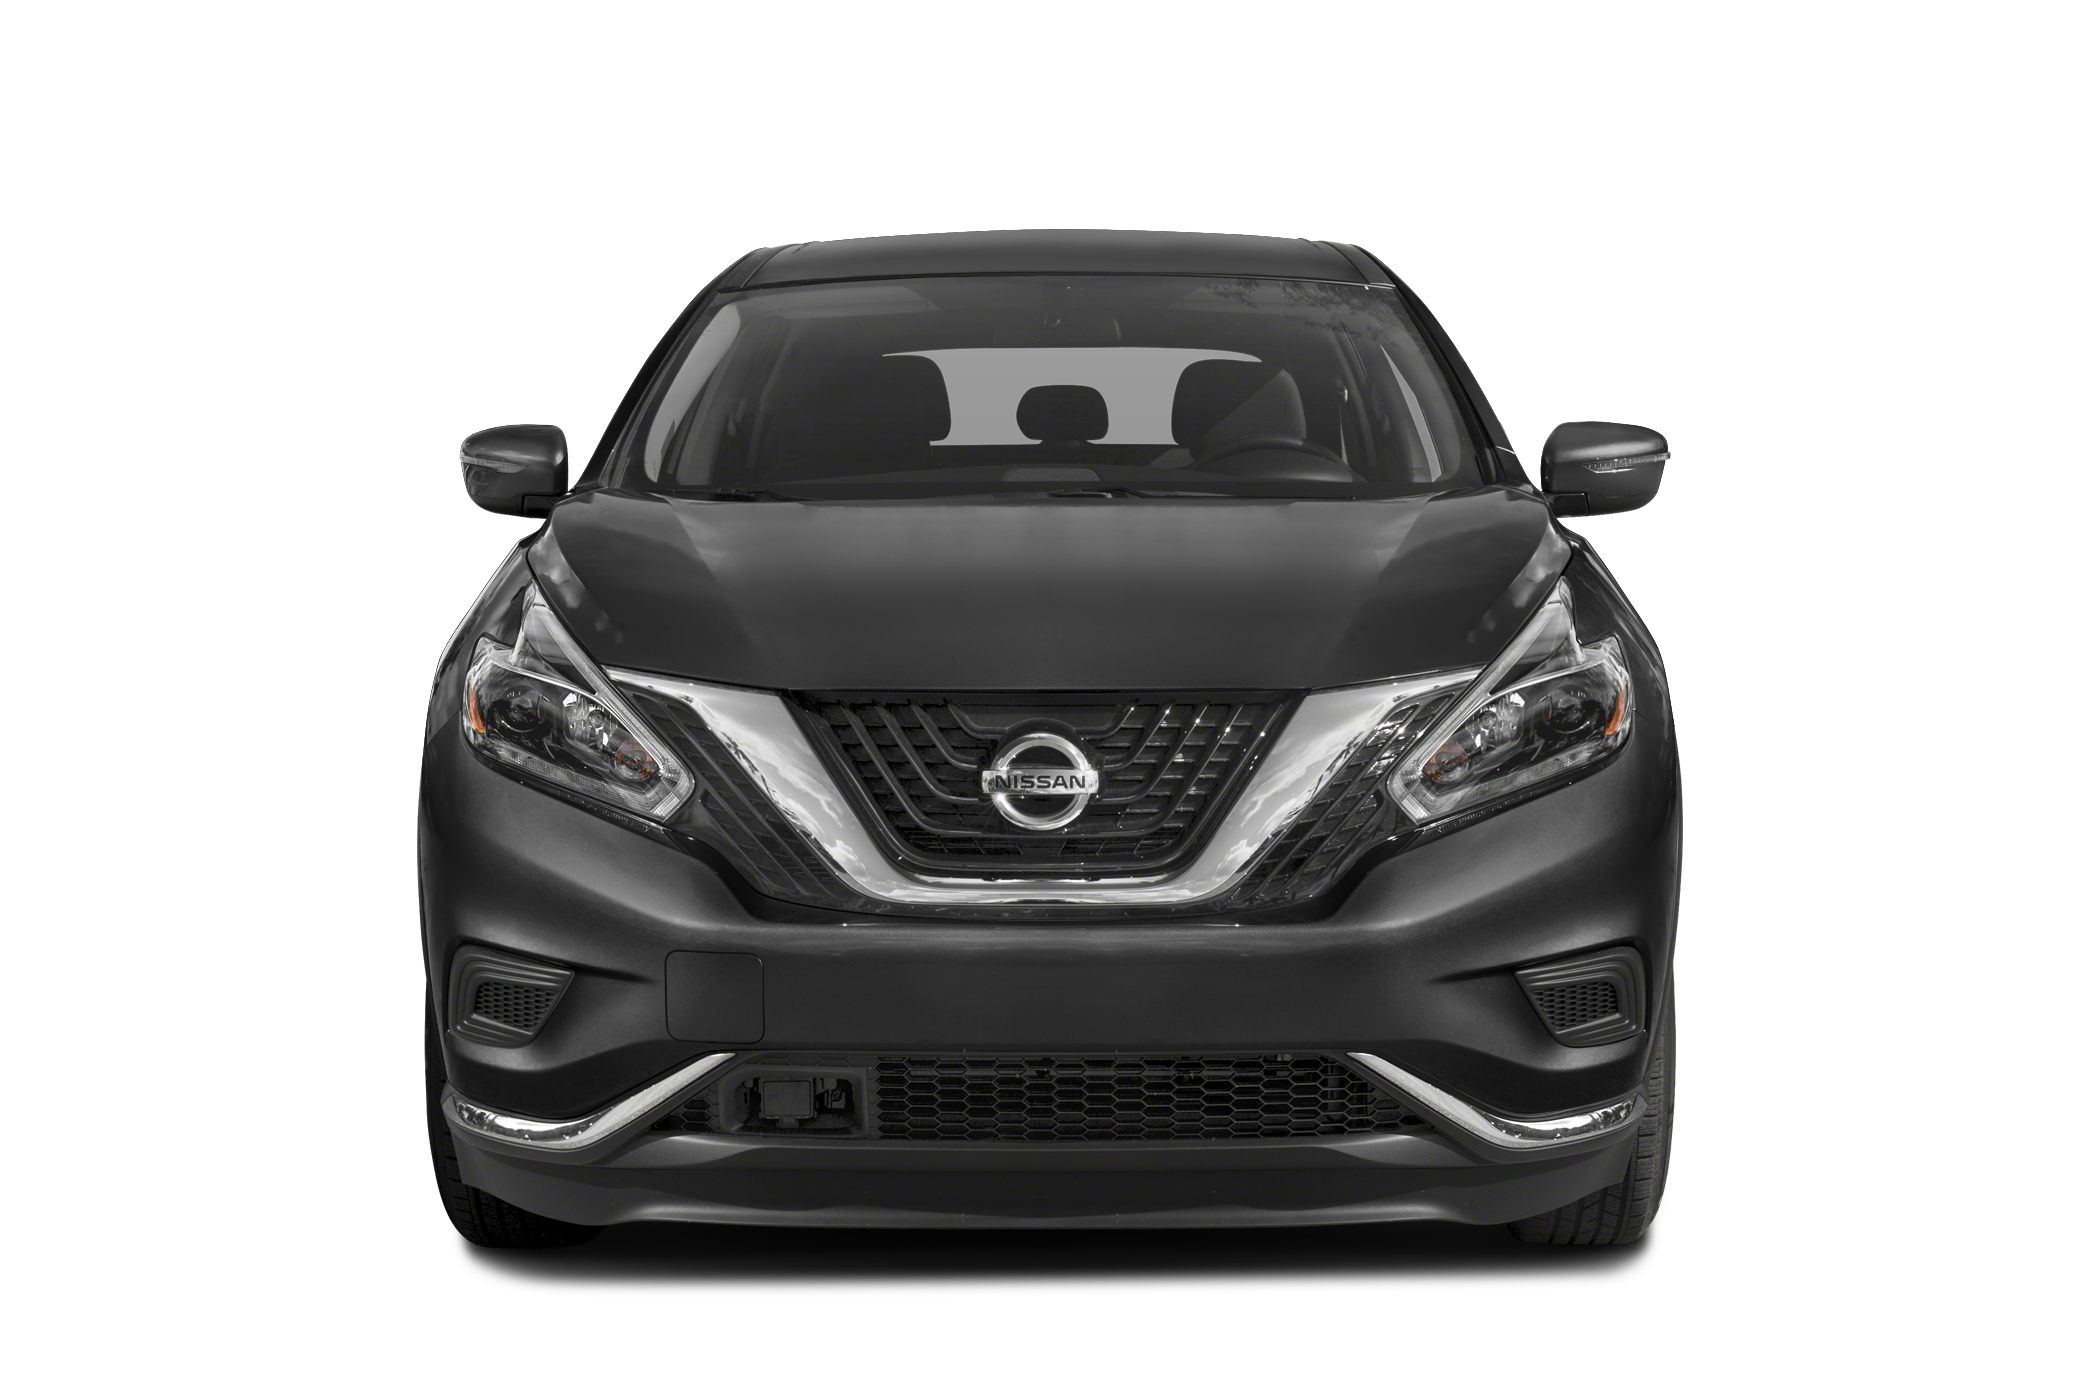 2018 Nissan Murano Deals, Prices, Incentives & Leases ...